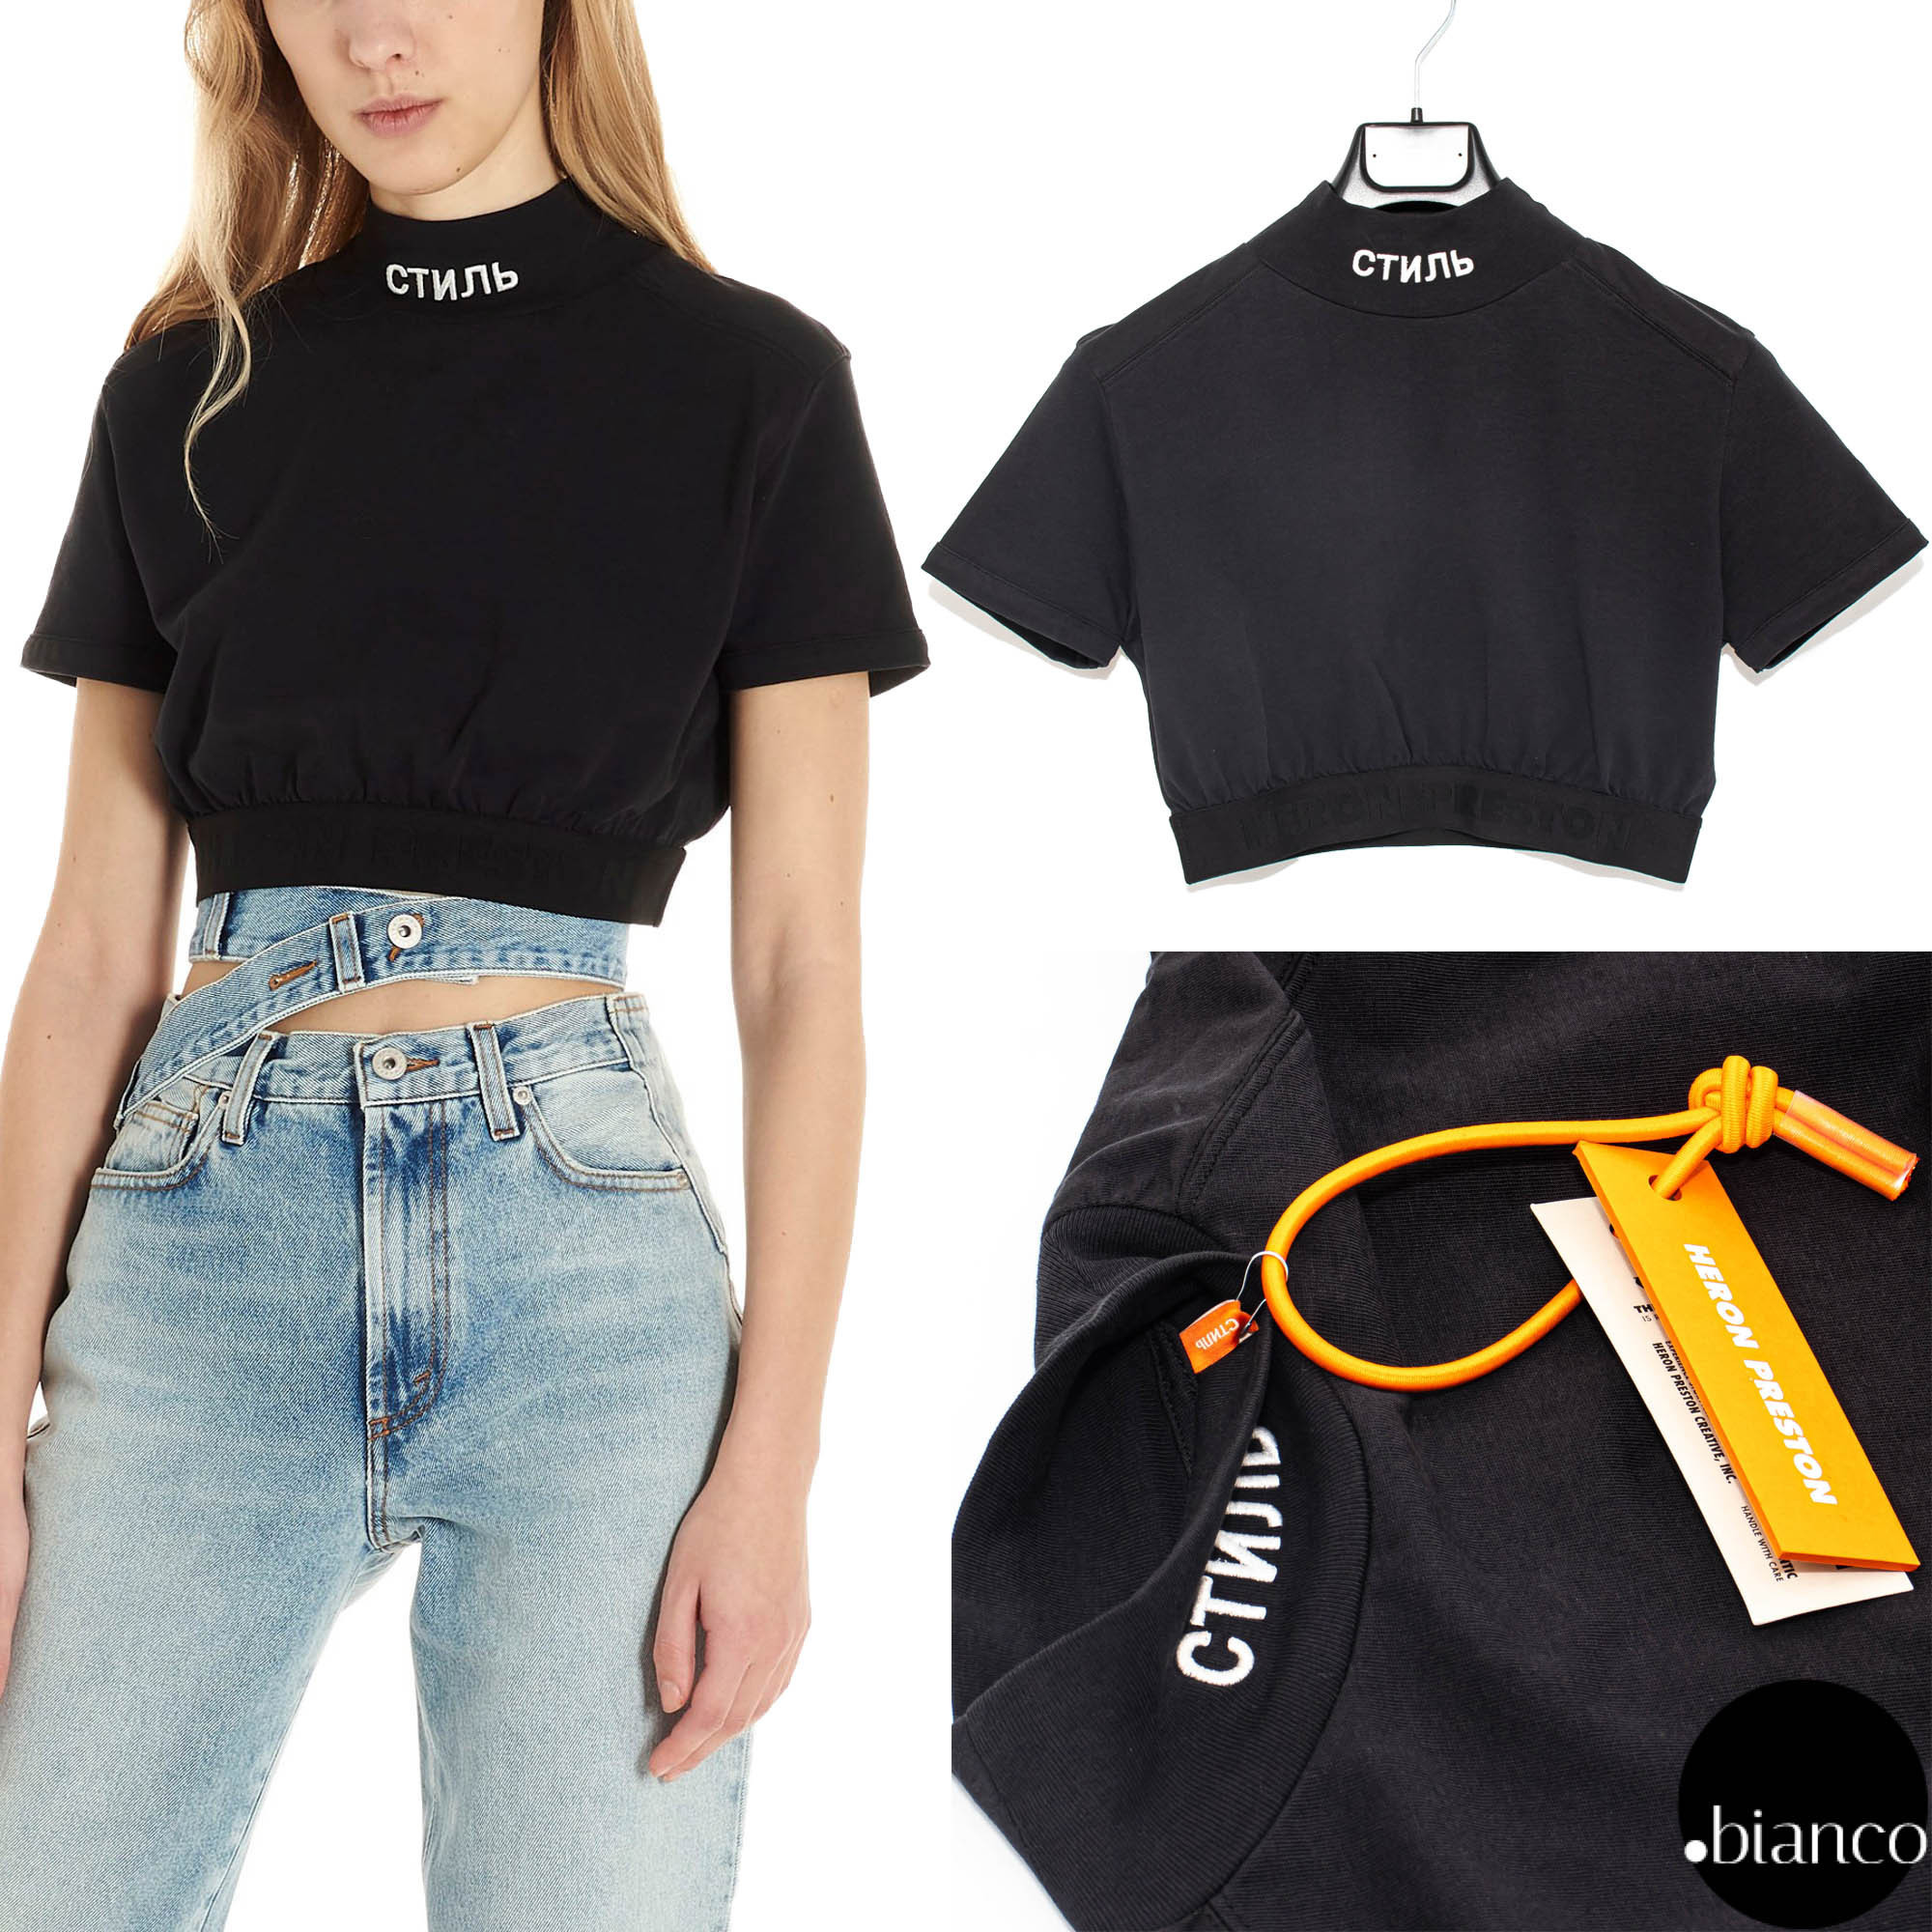 shop heron preston clothing